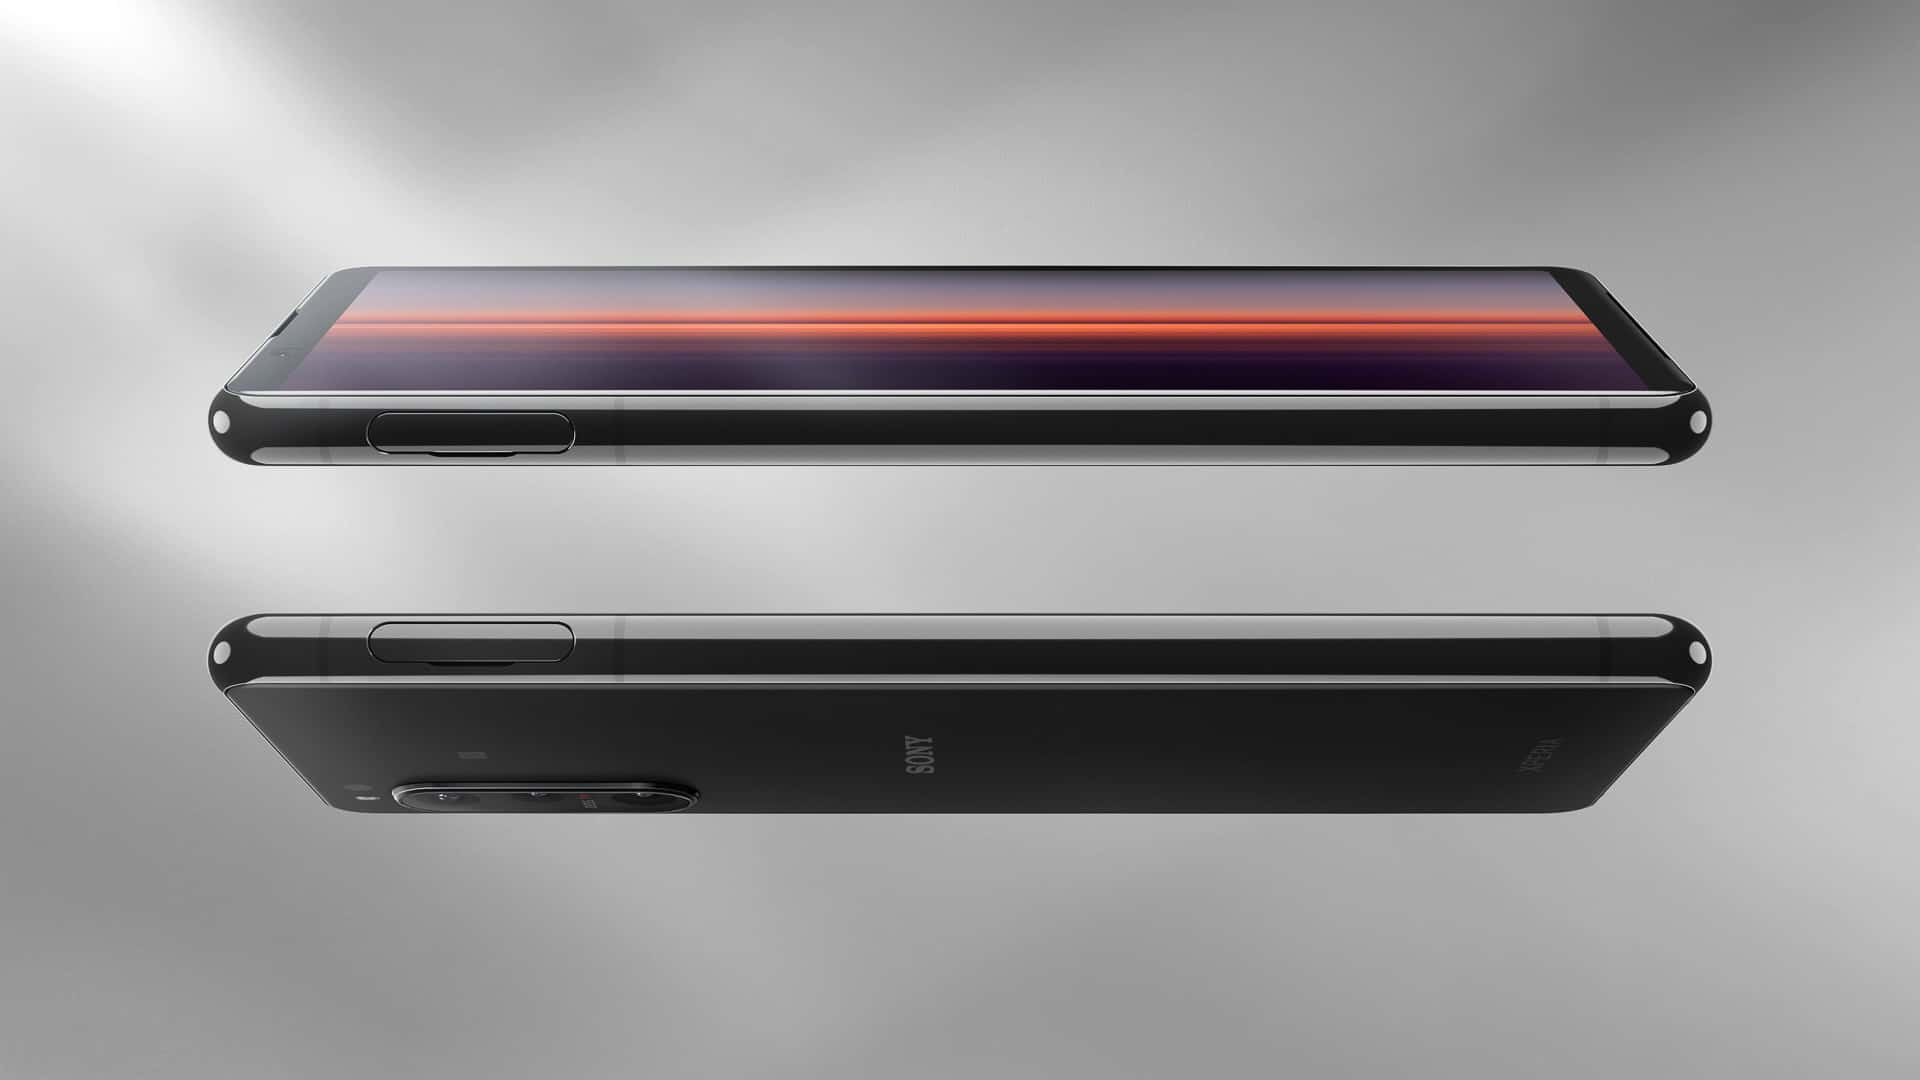 Xperia 5 II design specific black 16 9